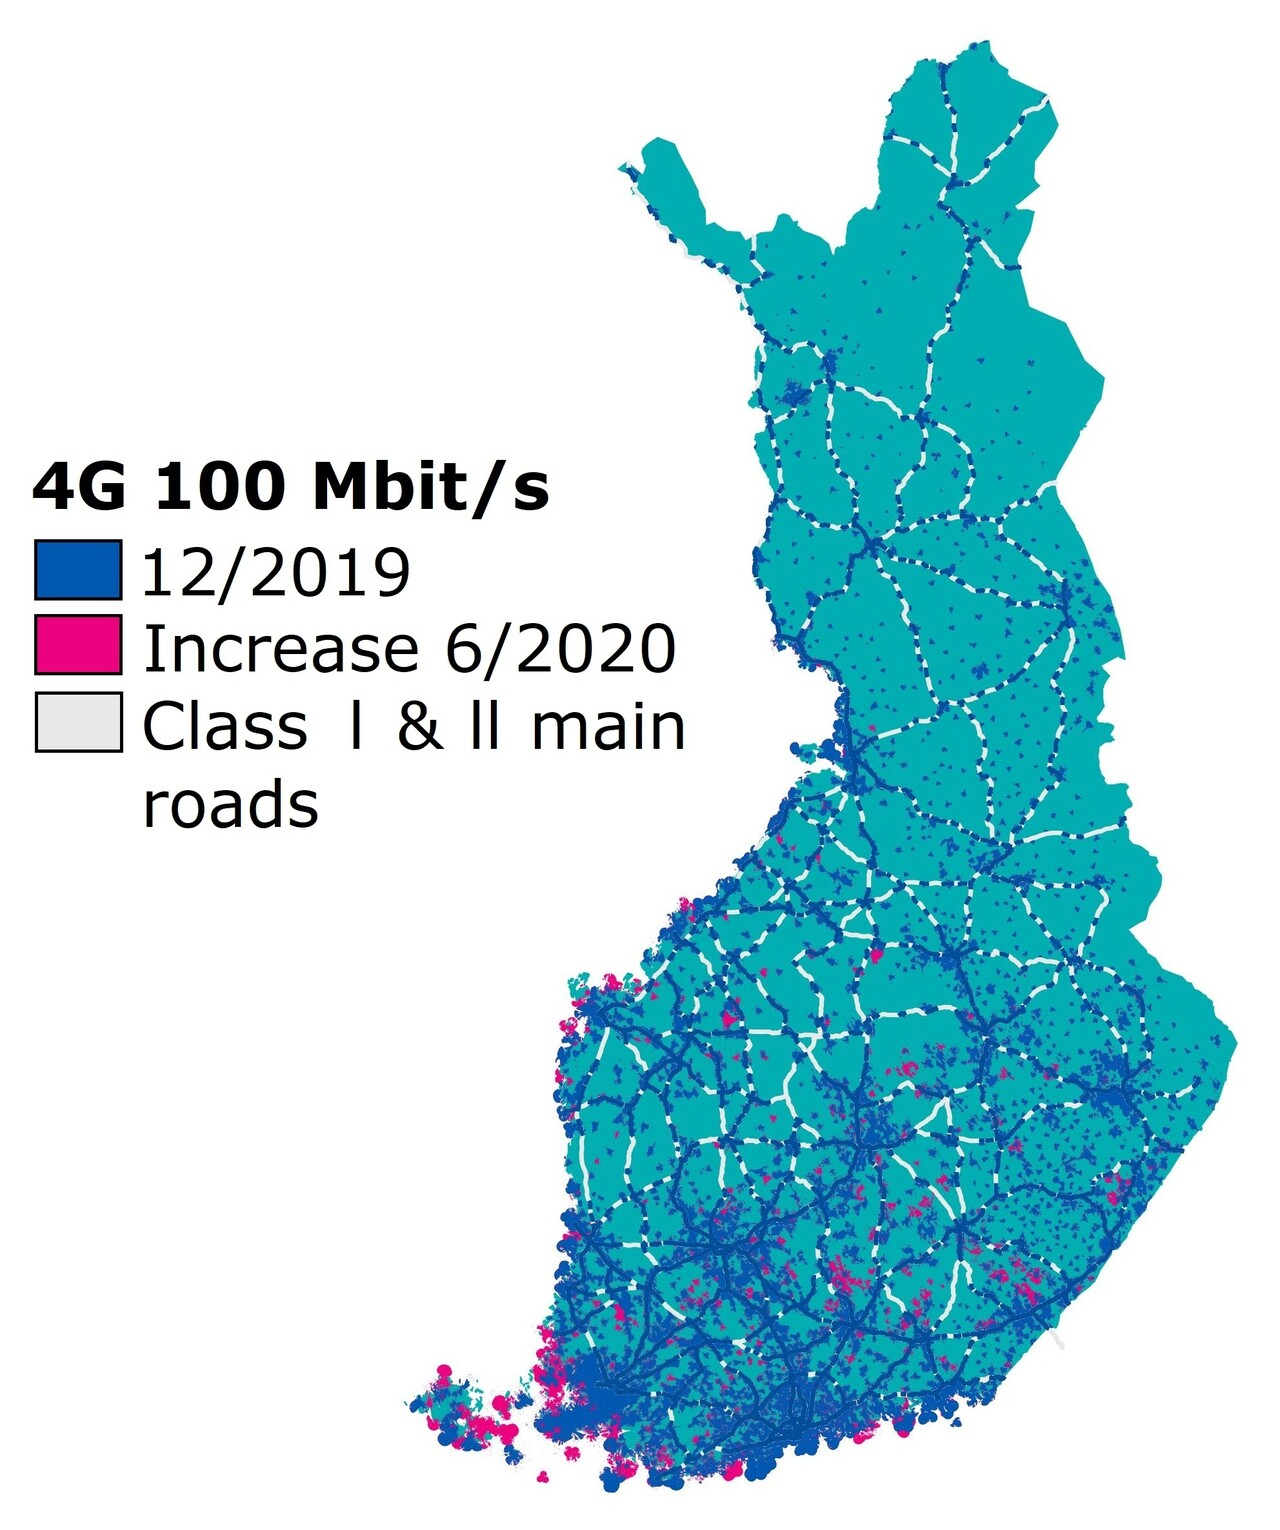 4G 100 Mbps coverage in June 2020: The 4G network's 100 Mbps service coverage extended to 18% of Finland's land area in June 2020. Coverage increased by two percentage points in six months. Highway and main road coverage was 57%.